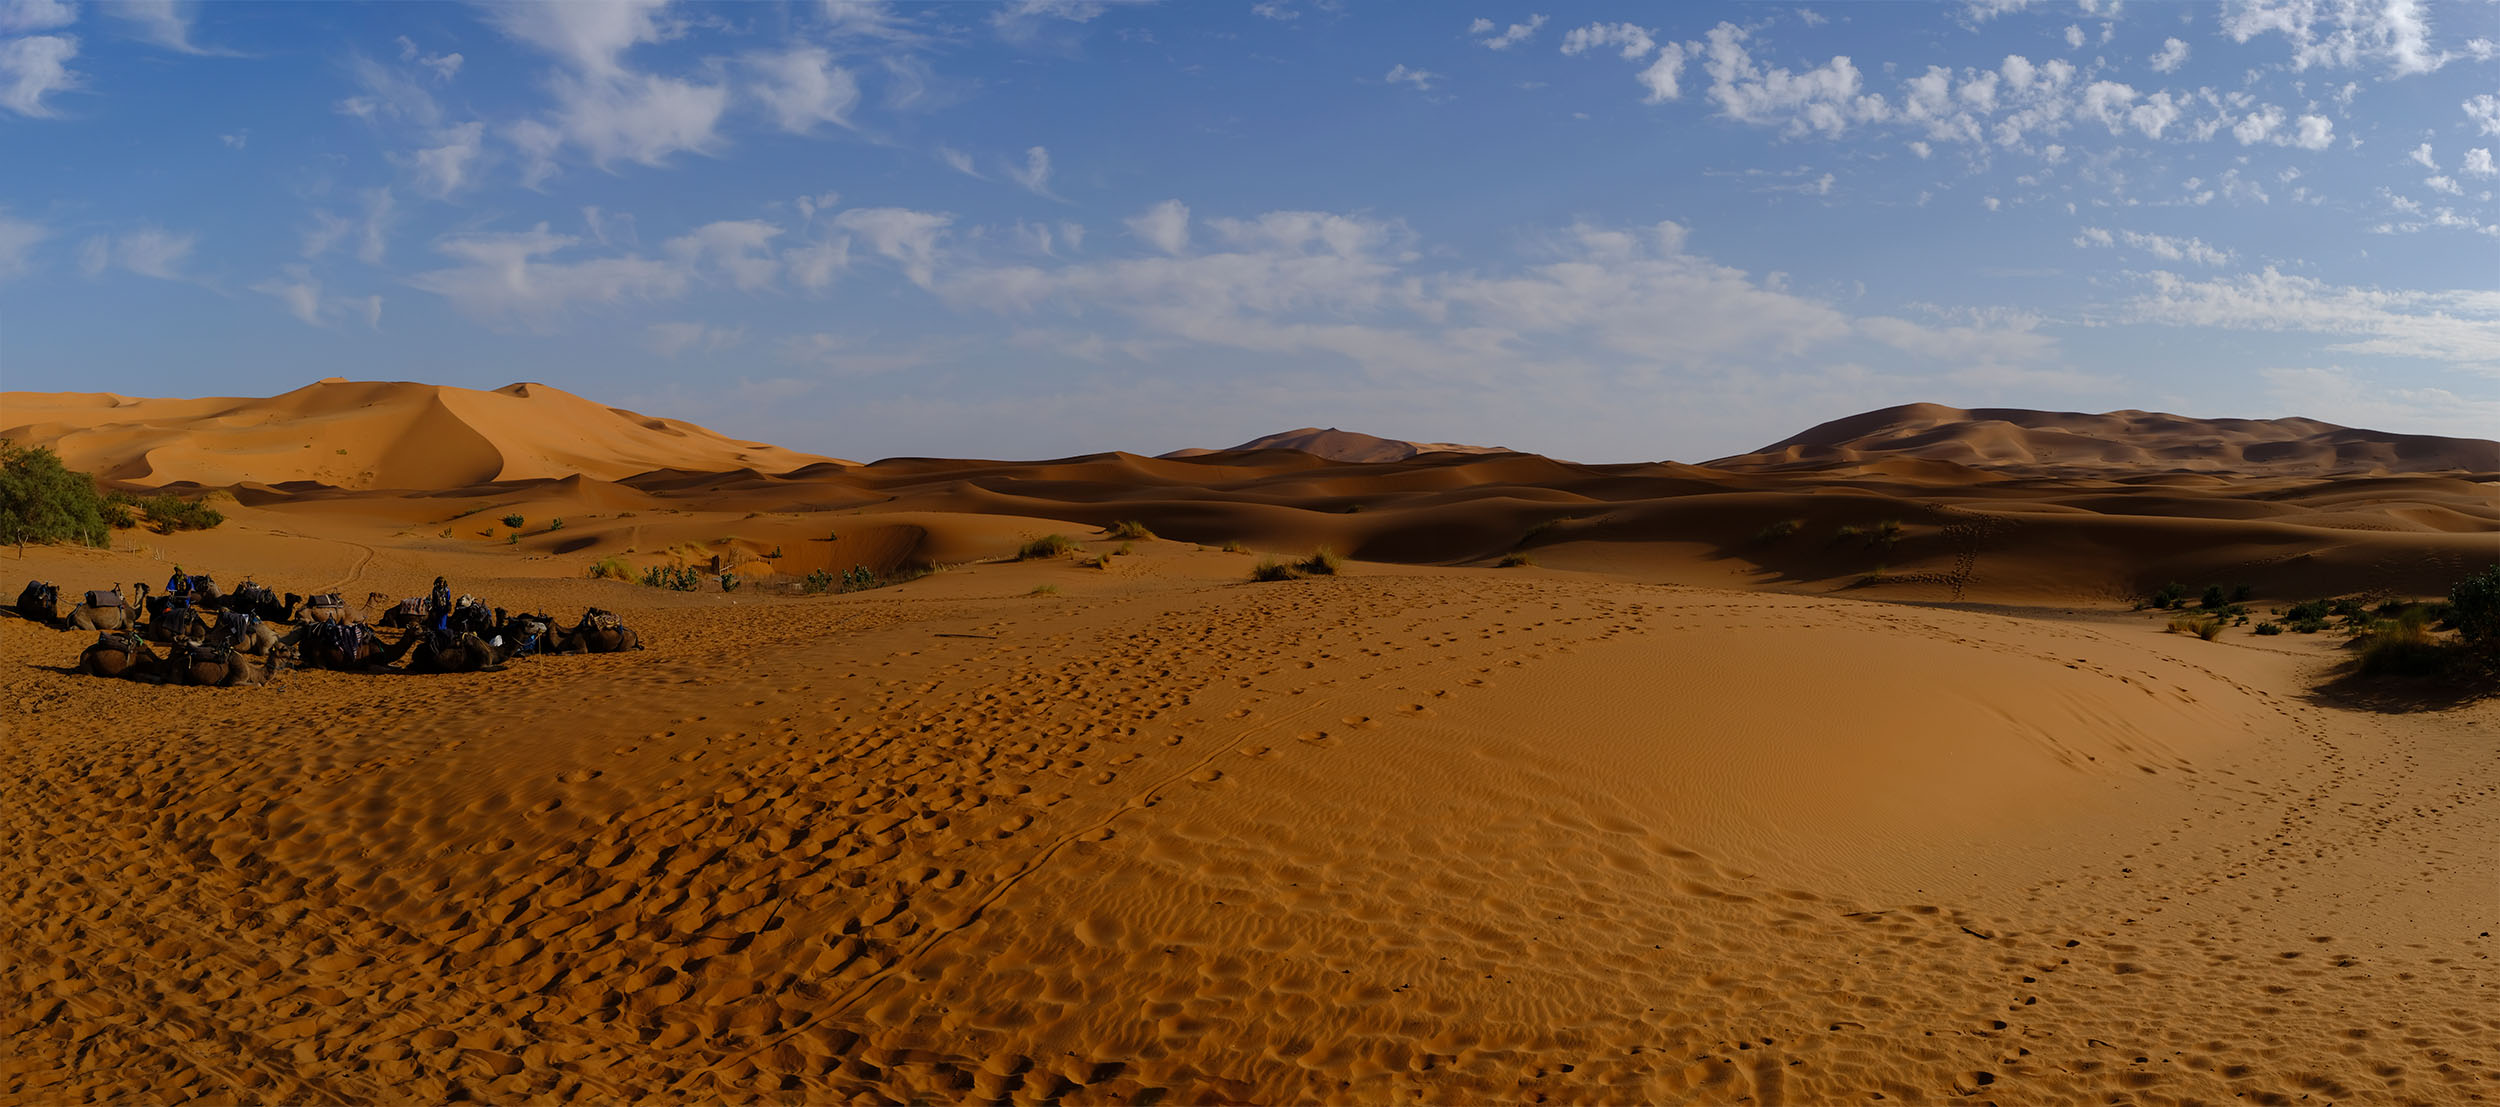 Landscape of Morocco's Erg Chebbi at sunset.